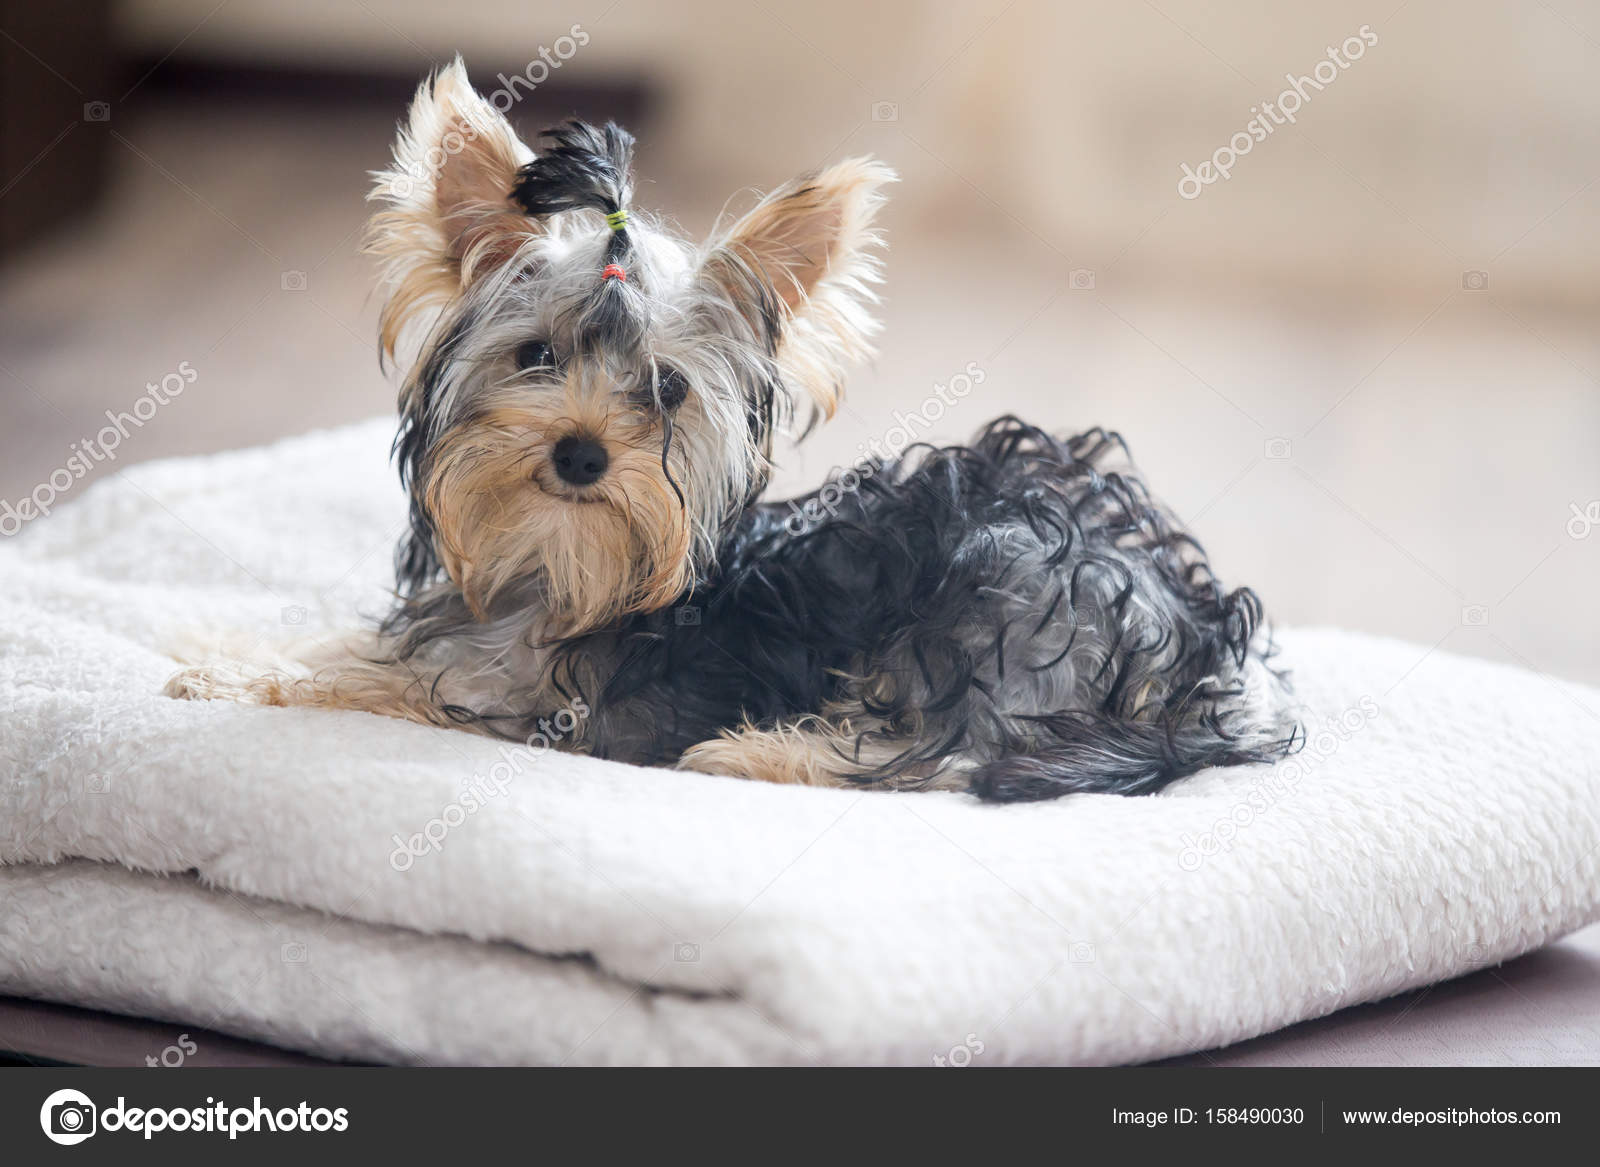 Popular Bow Tie Bow Adorable Dog - depositphotos_158490030-stock-photo-cute-little-dog-with-bow  Perfect Image Reference_805242  .jpg